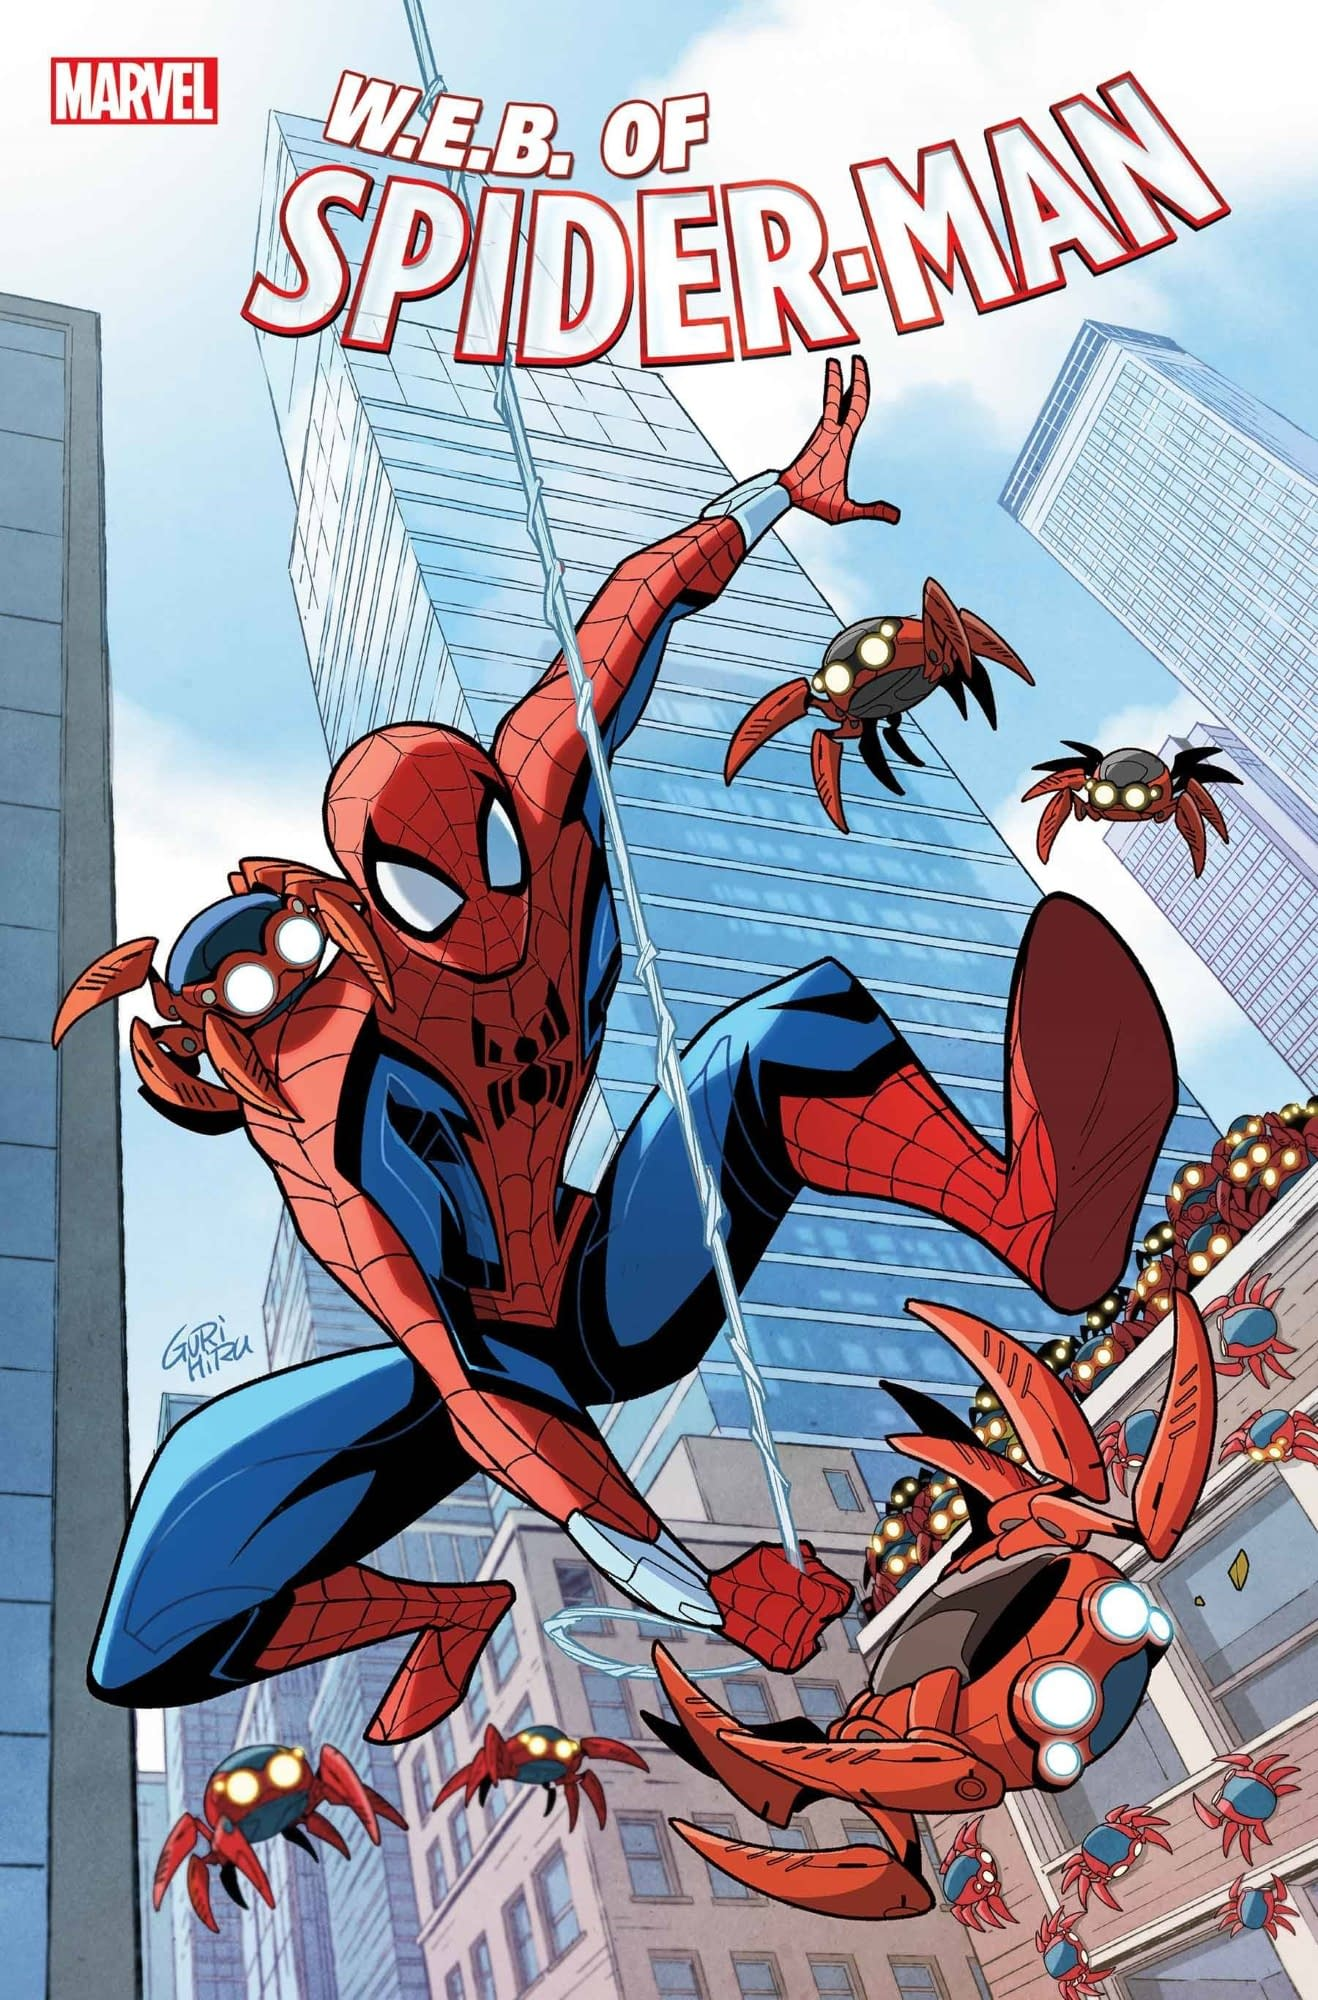 W.E.B. Of Spider-Man Rescheduled For June